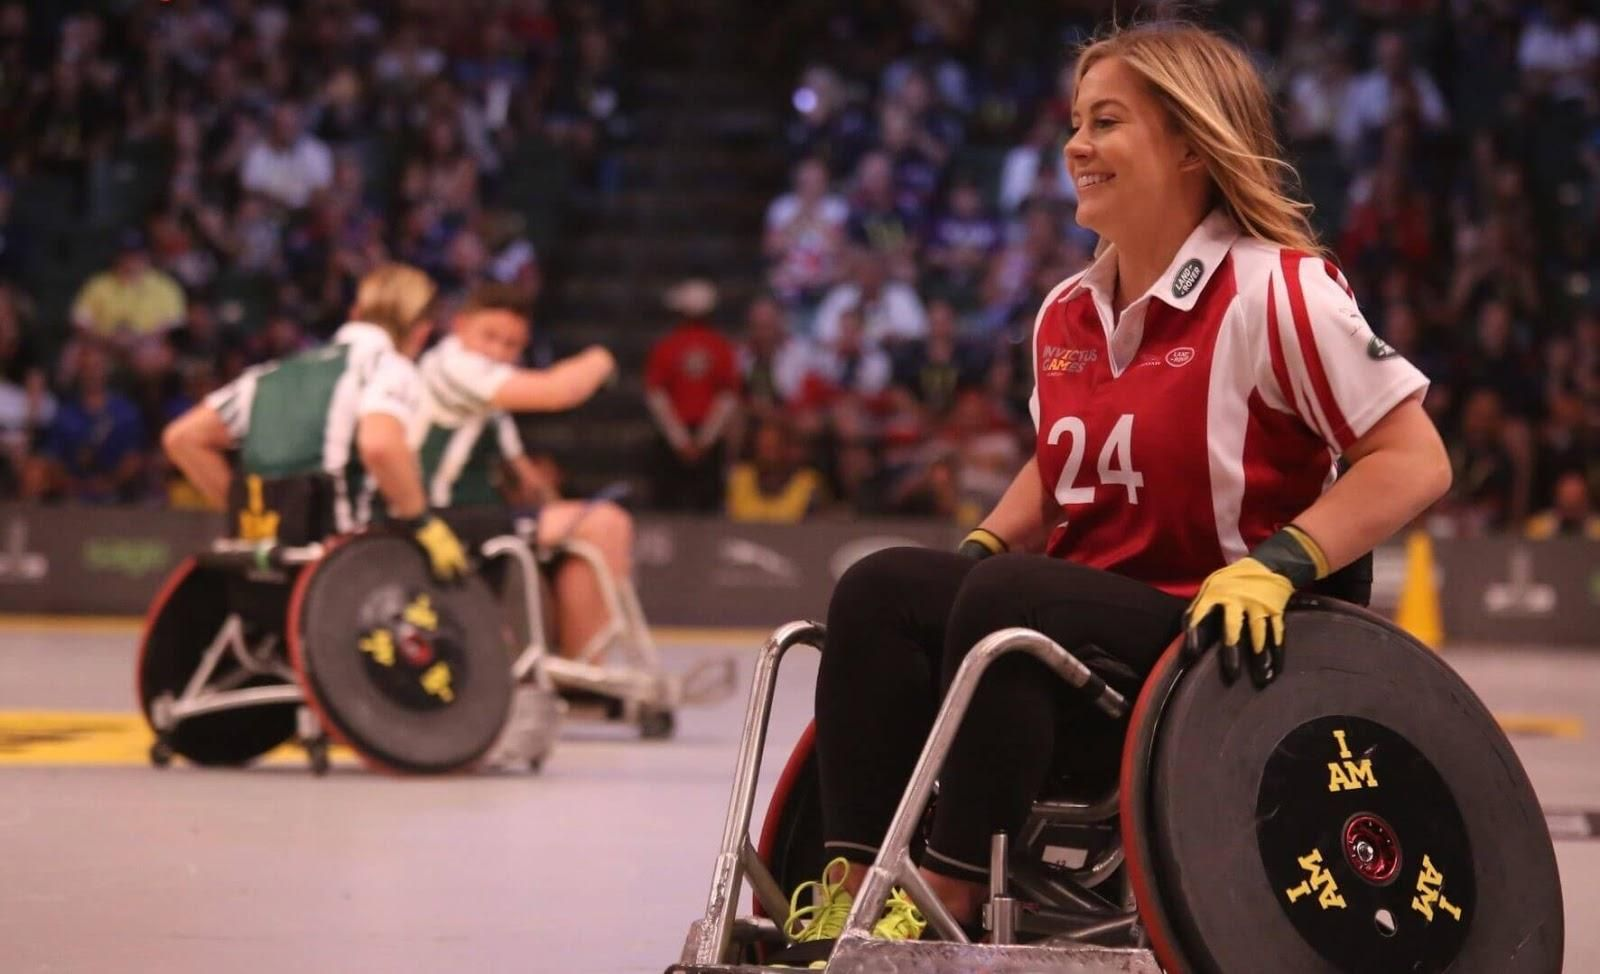 Picture of a young woman playing sports on a wheelchair.